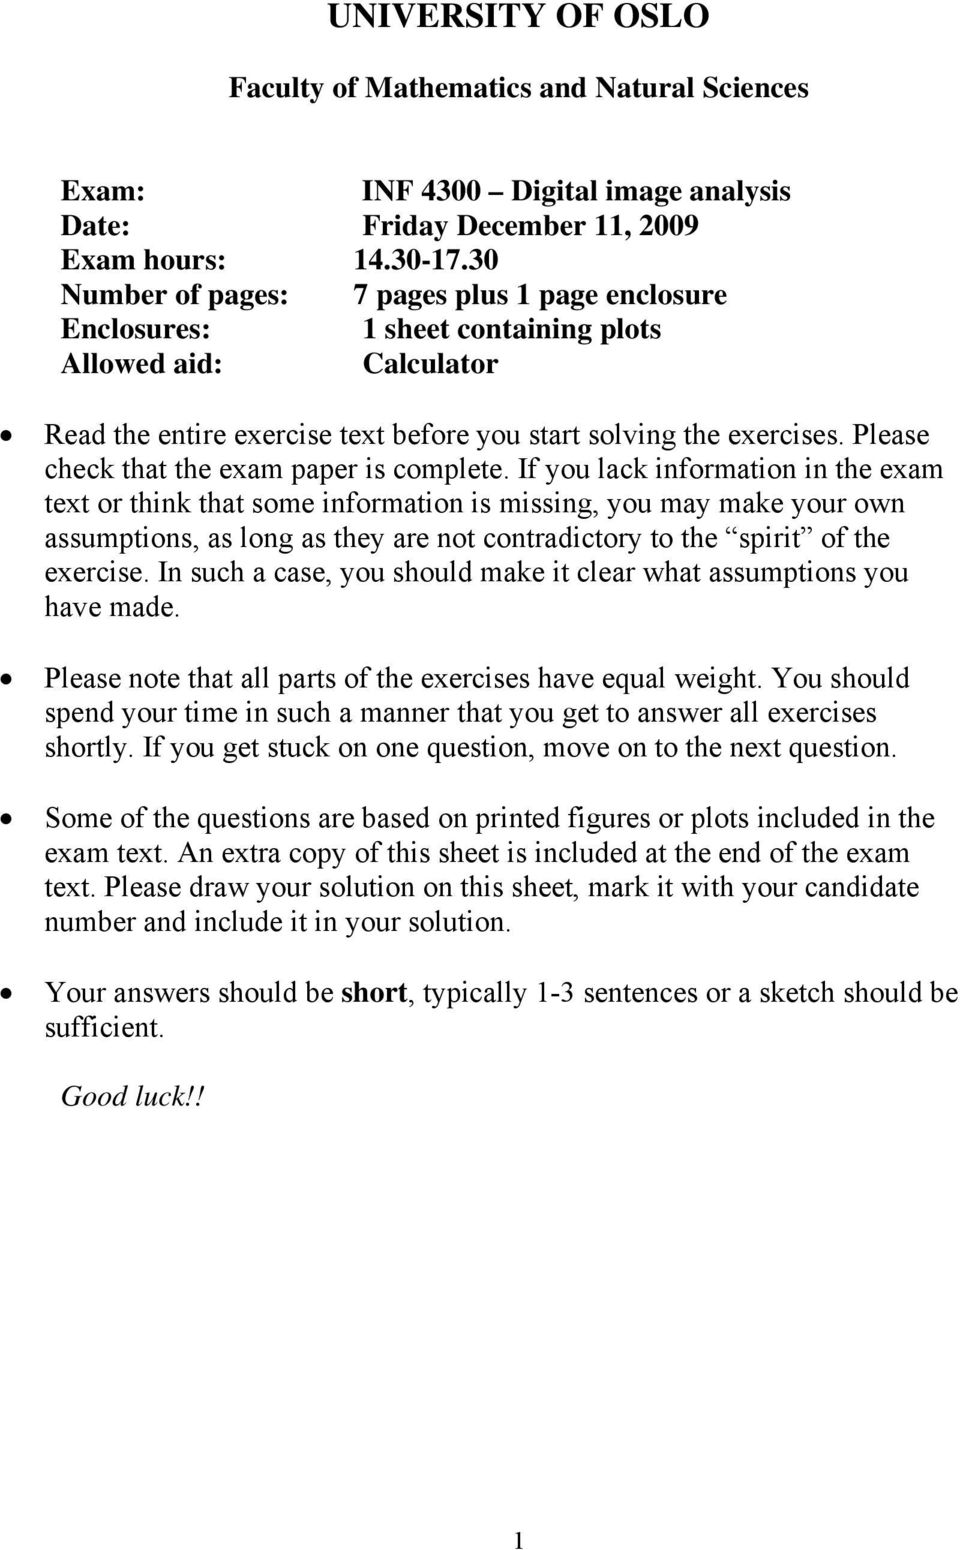 Please check that the exam paper is complete.